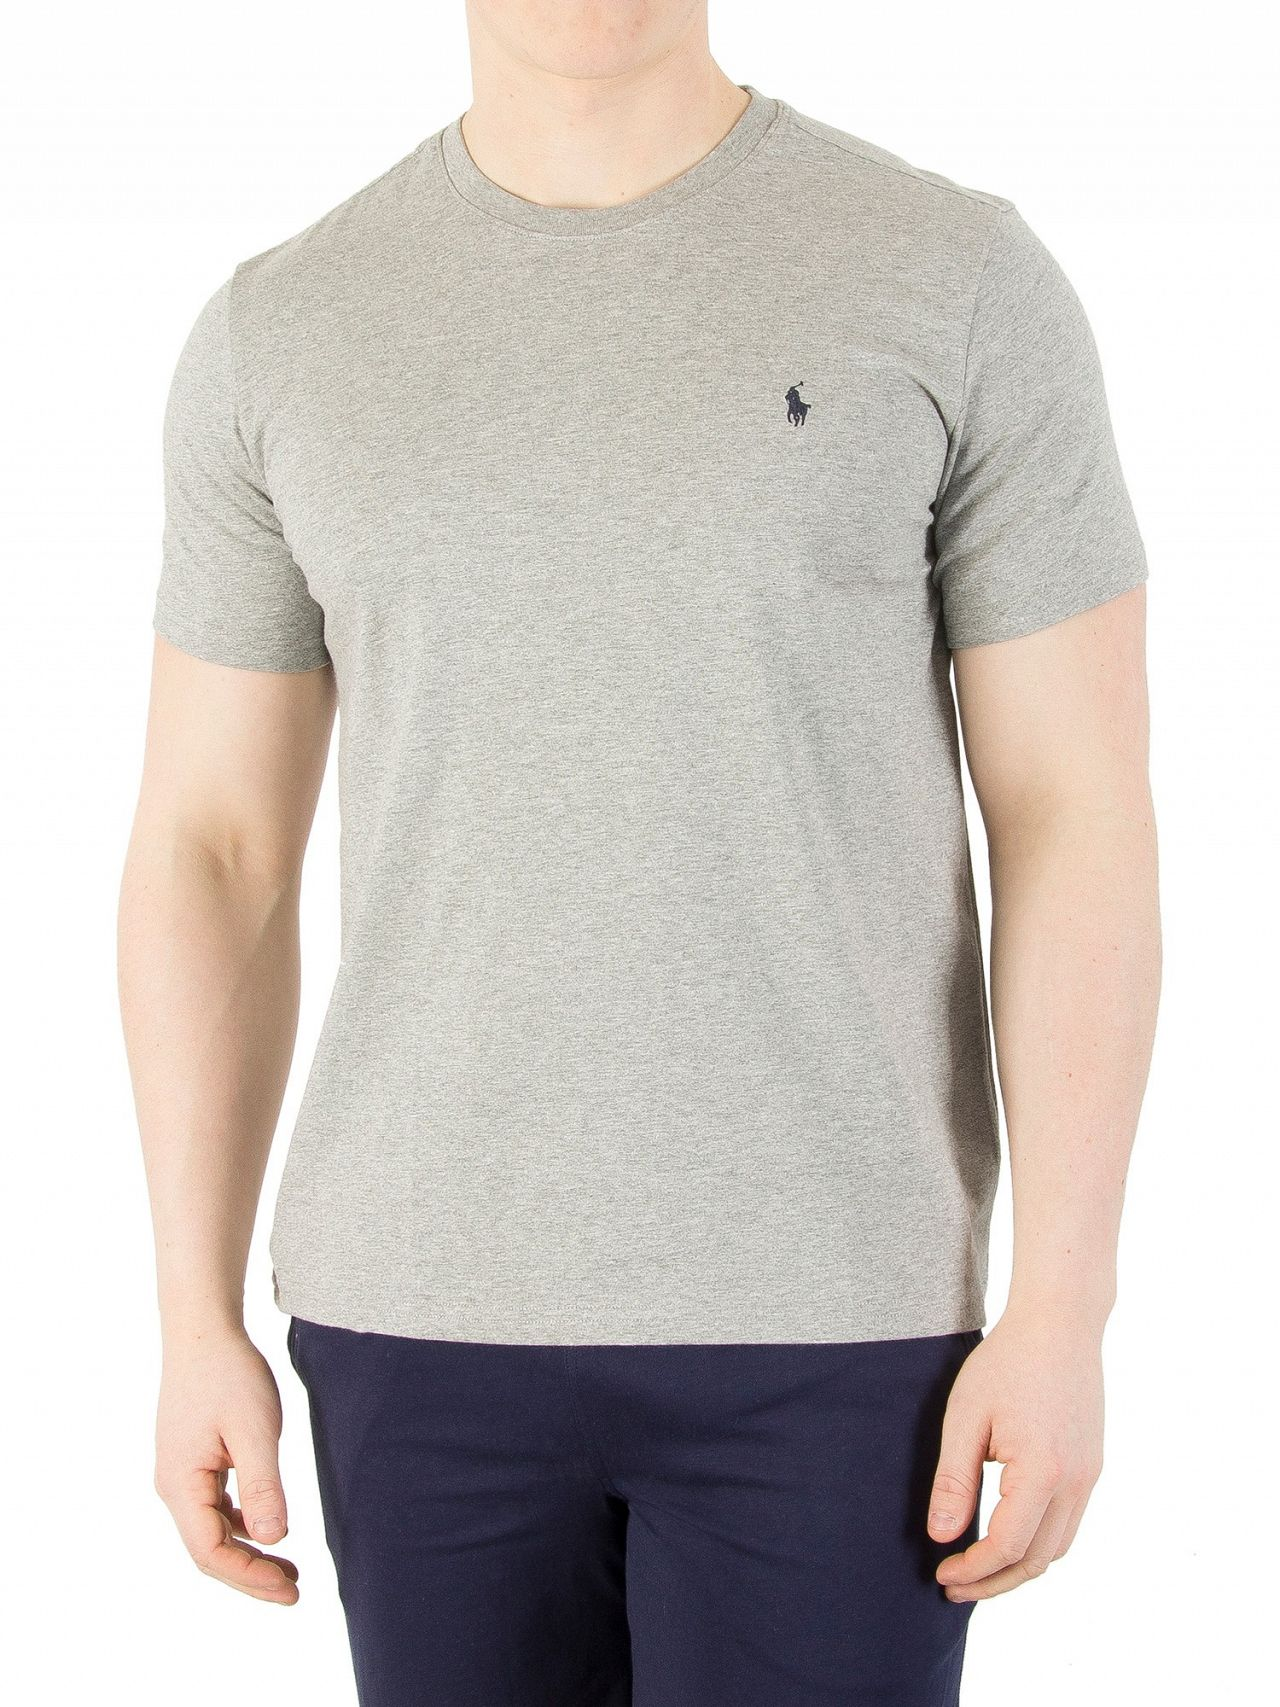 Polo ralph lauren heather grey logo crew neck t shirt for What is polo neck t shirts